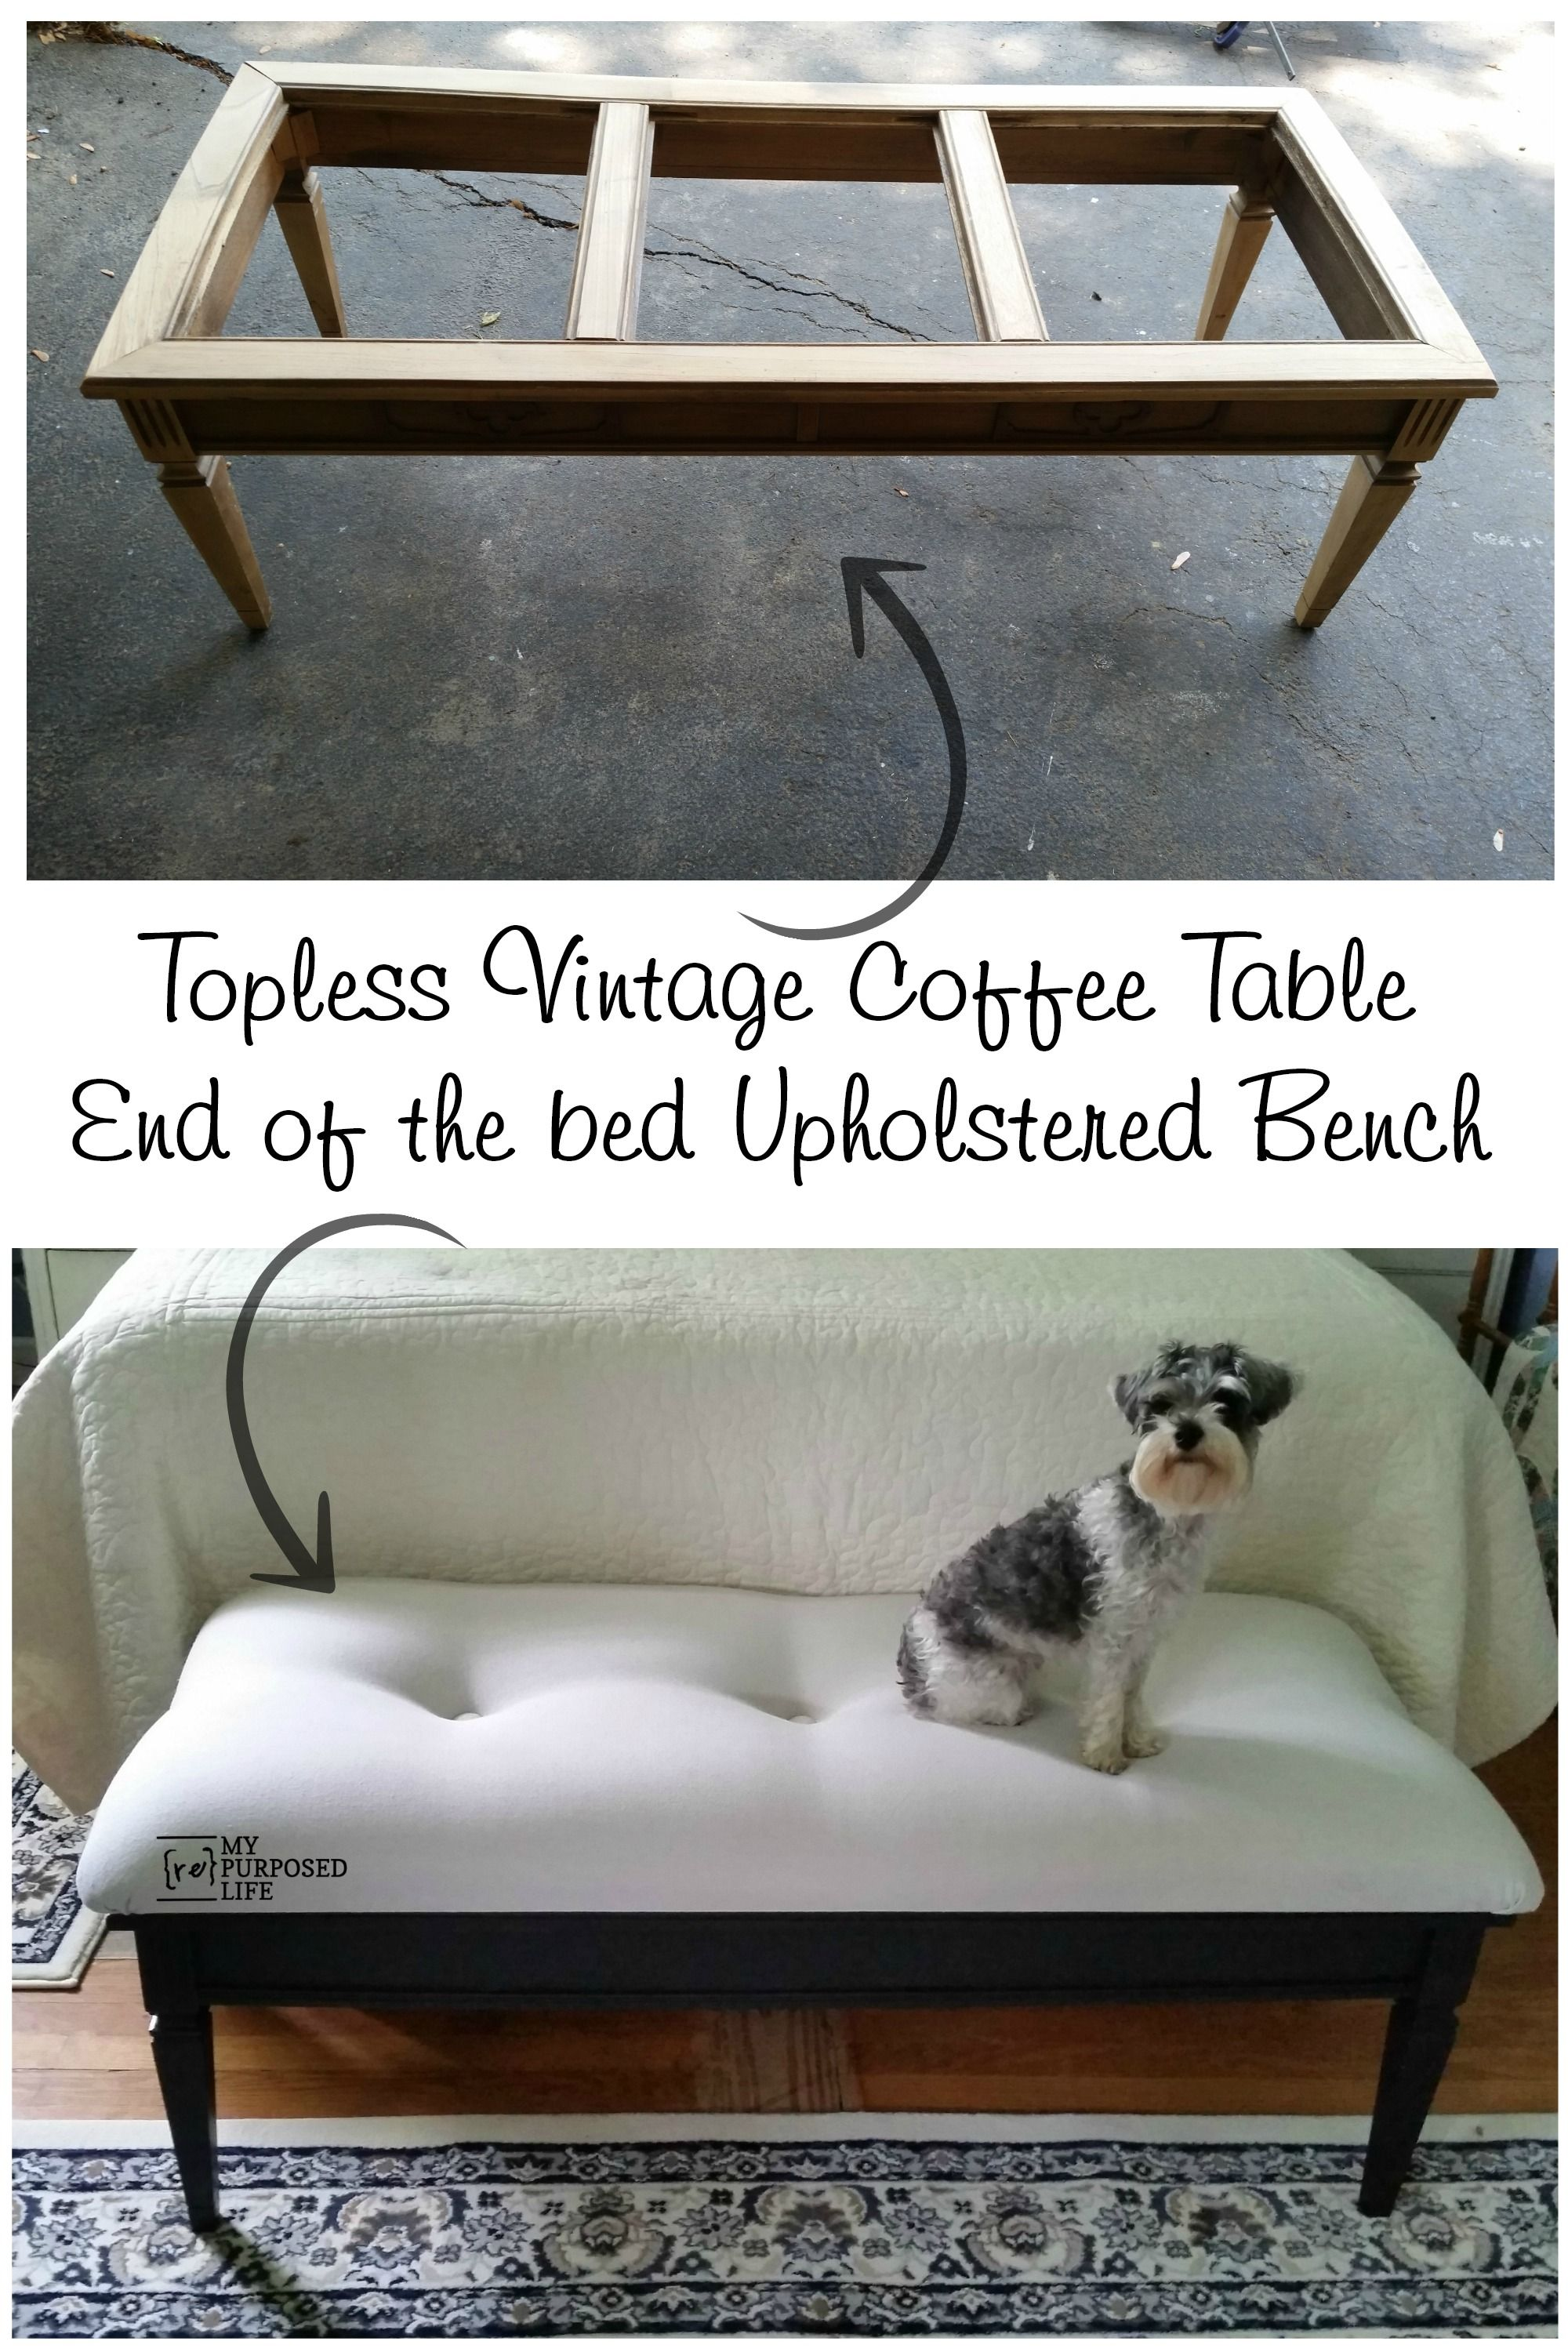 Coffee Table Bench Easy Button Tufted Upholstery My Repurposed Life Rescue Re Imagine Repeat Coffee Table Bench End Of Bed Bench Coffee Table Vintage